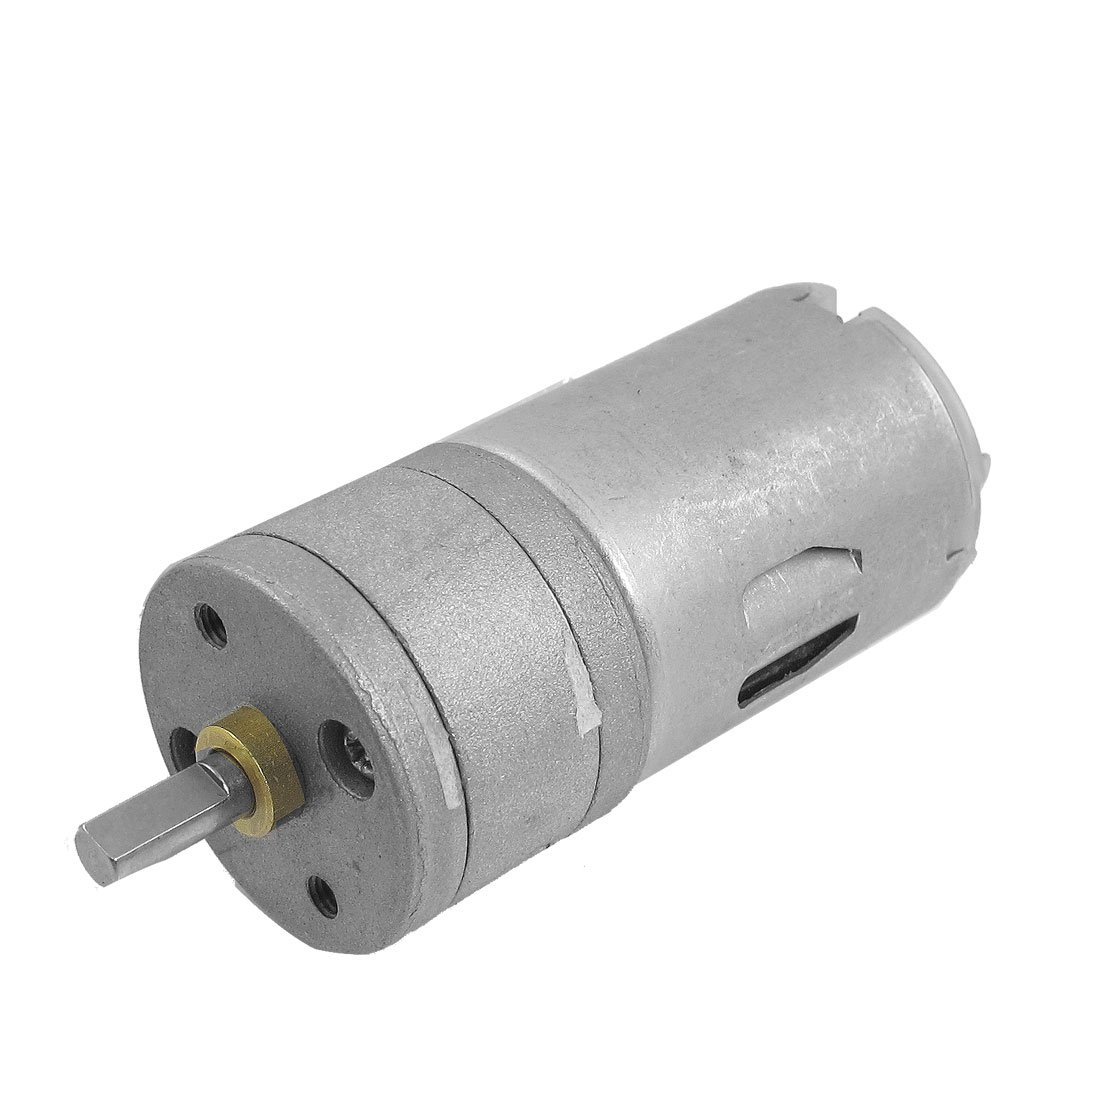 uxcell DC 6V 600RPM 1A 25GA 2 Terminals Electric Geared Motor Silver Tone